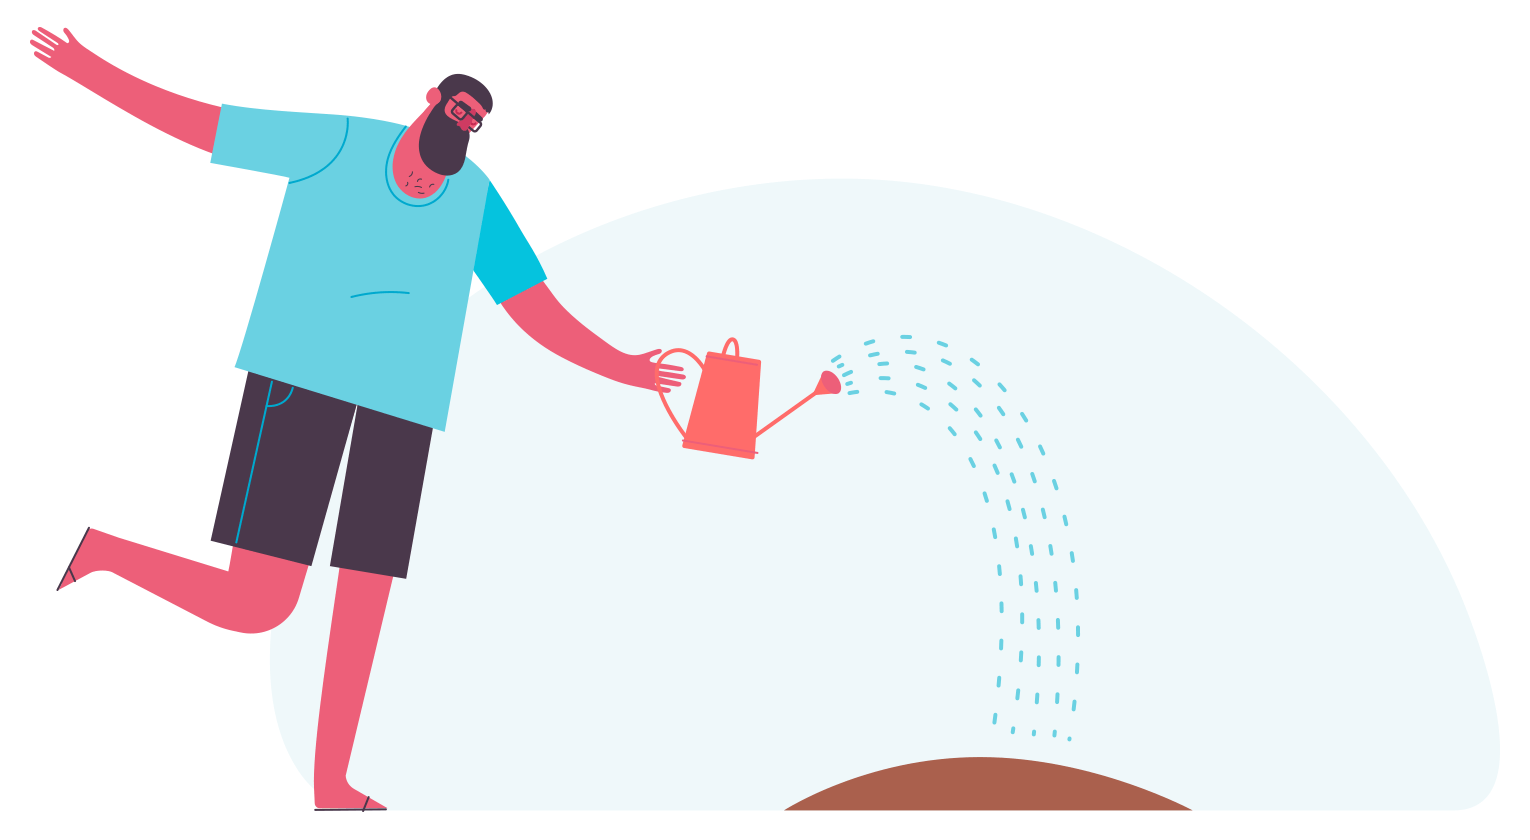 Illustration of a person using a watering can to water the seeds they just planted